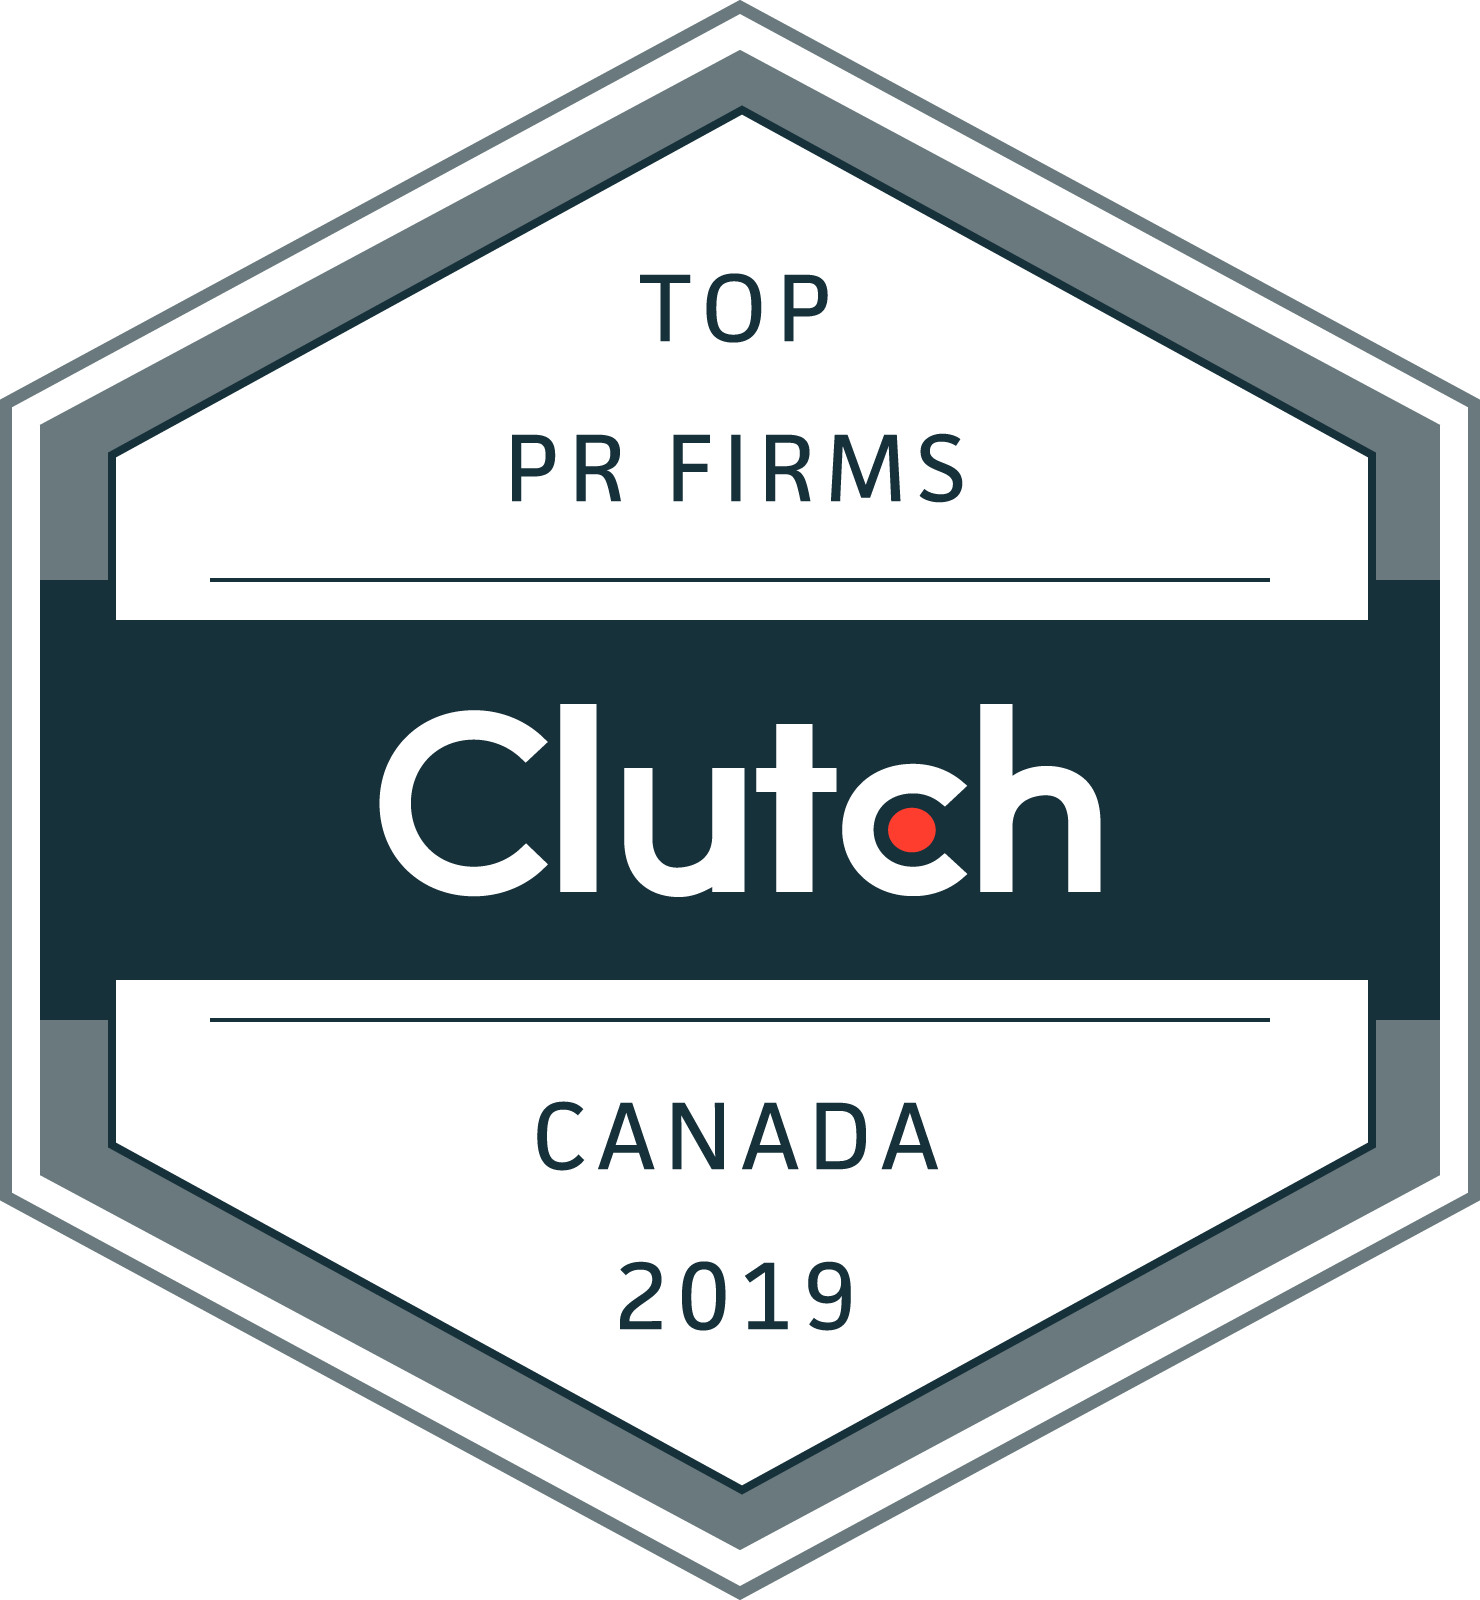 Top PR Firm Canada